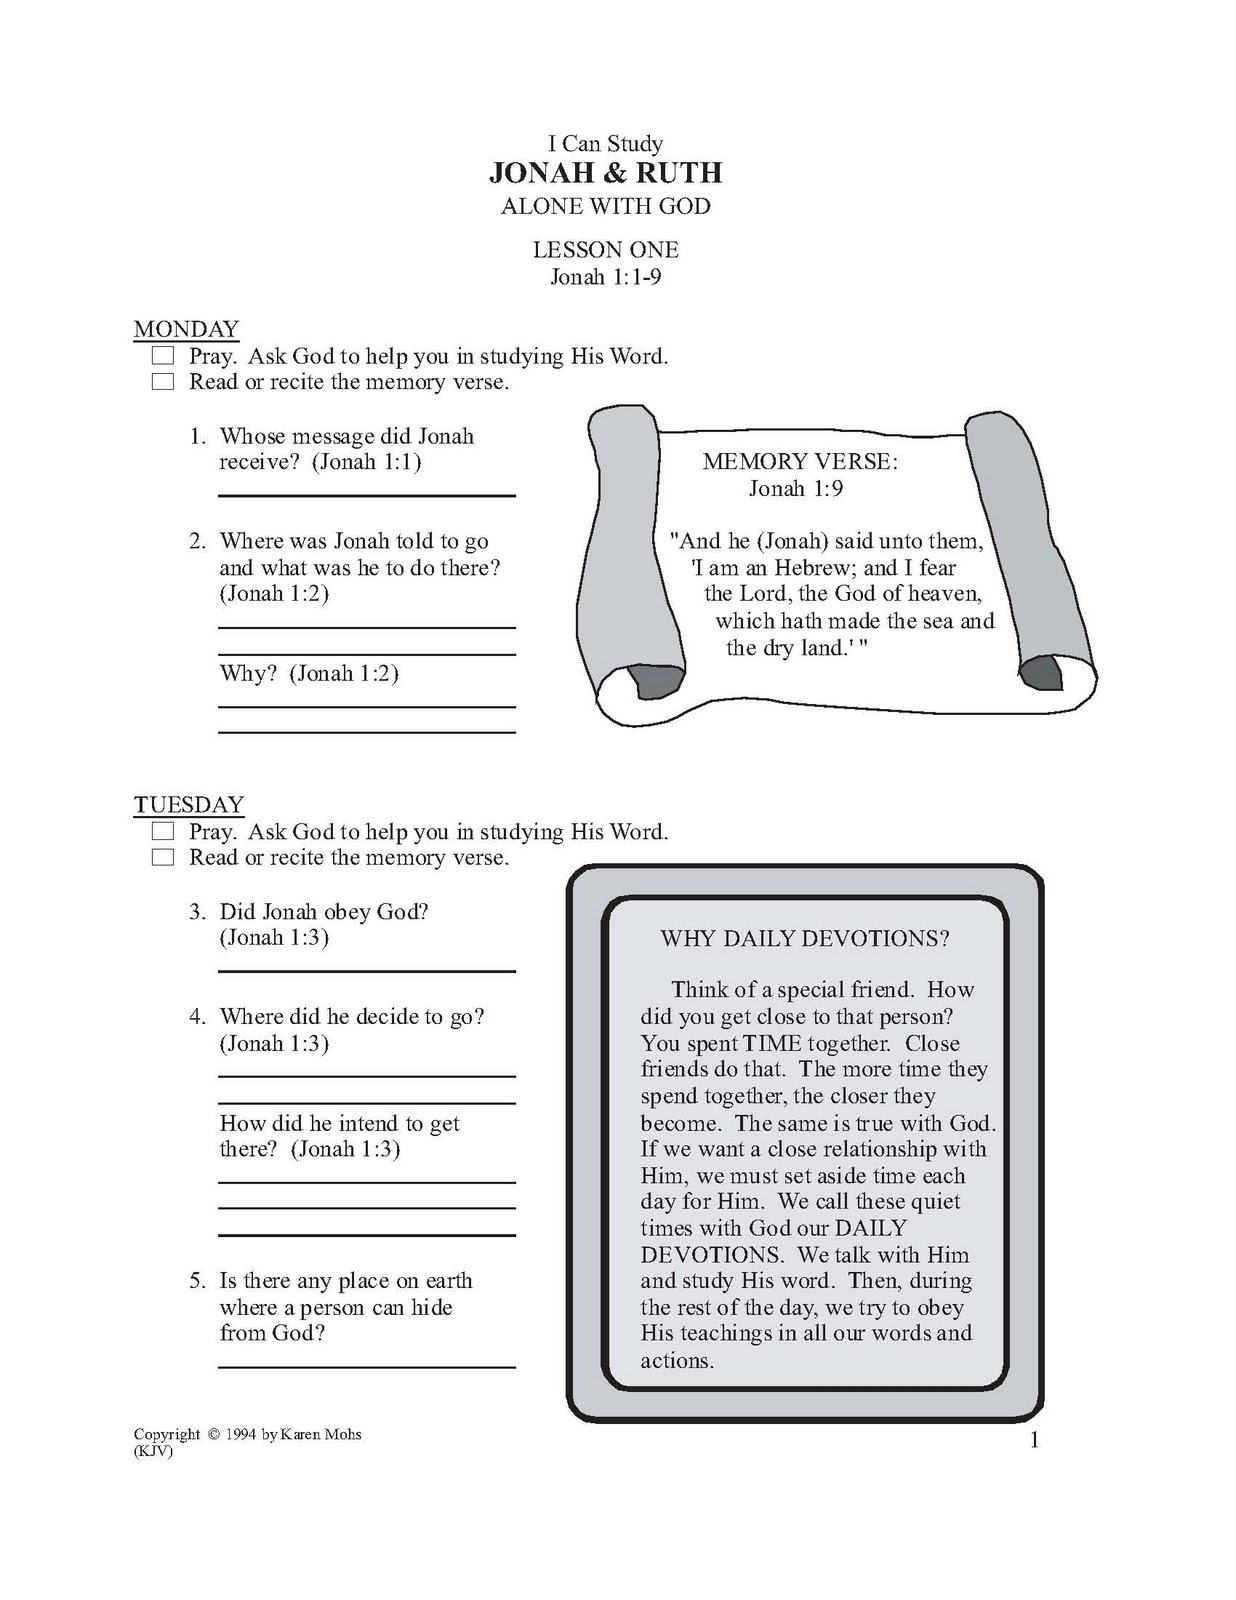 Bible Stus Worksheets Furthermore Math Worksheets For Grade 1 K12 ...